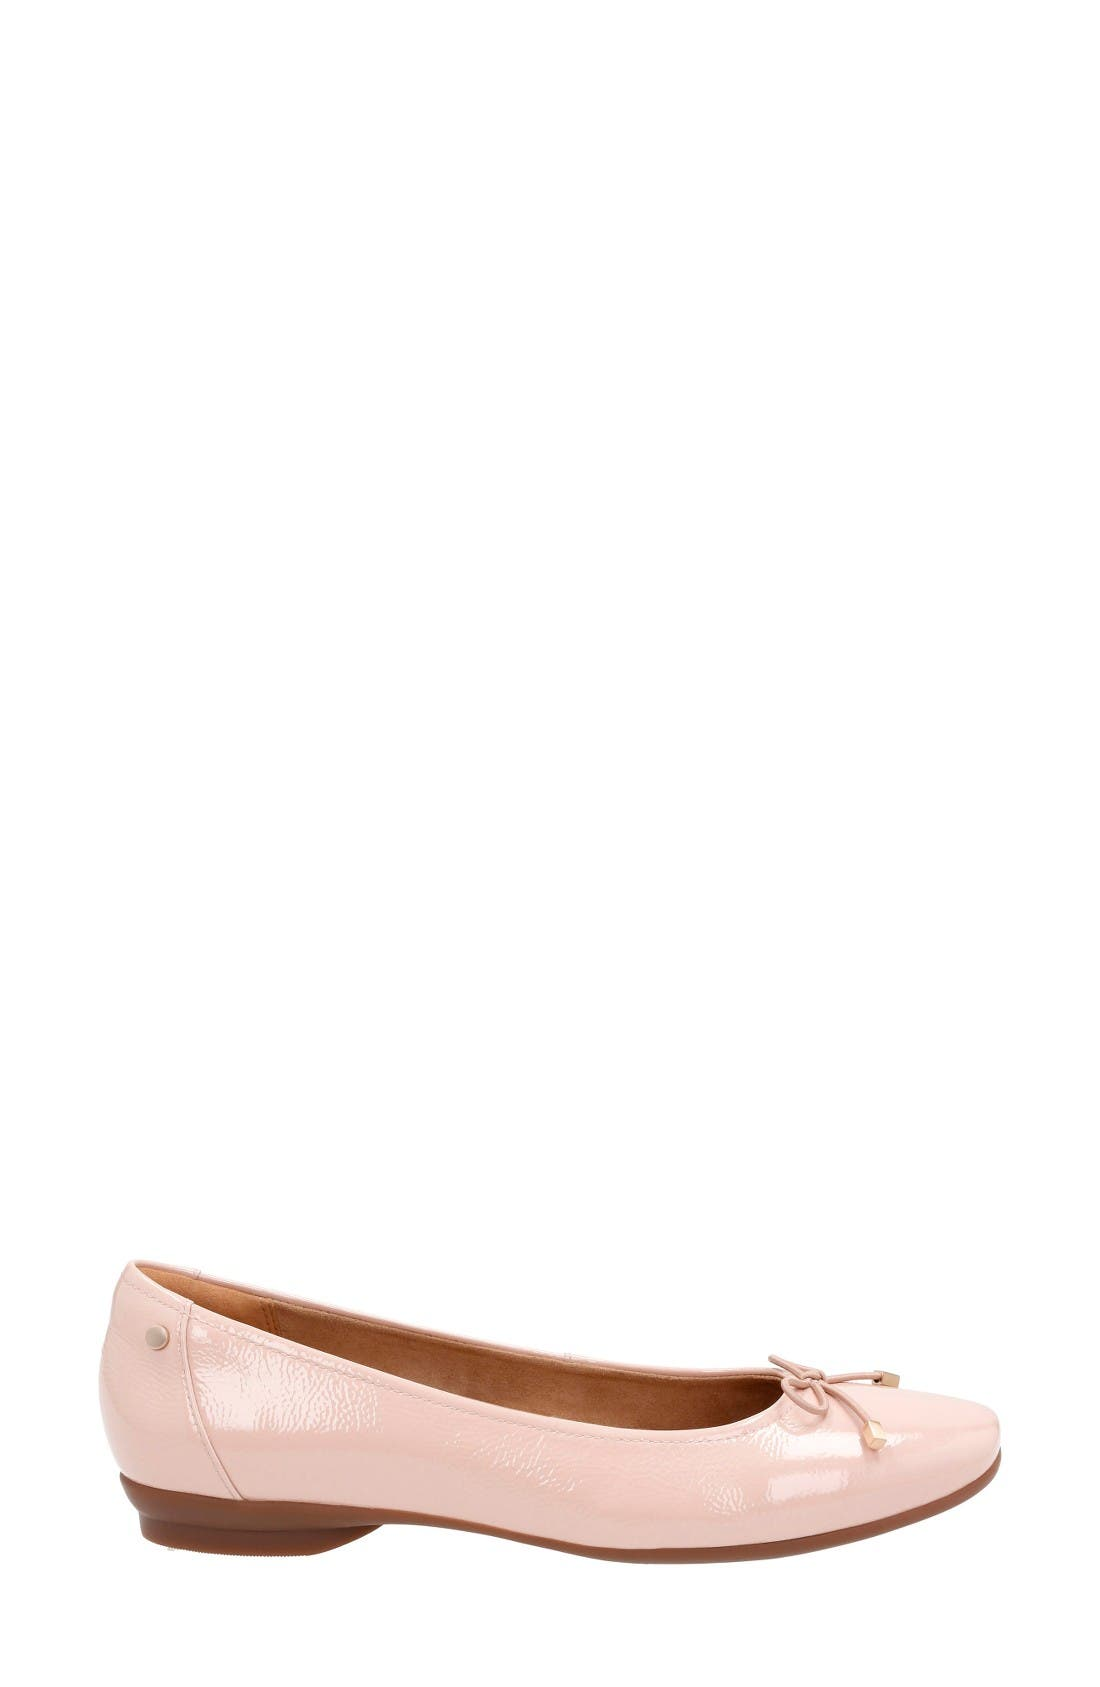 'Candra Light' Flat,                             Alternate thumbnail 3, color,                             Dusty Pink Patent Leather